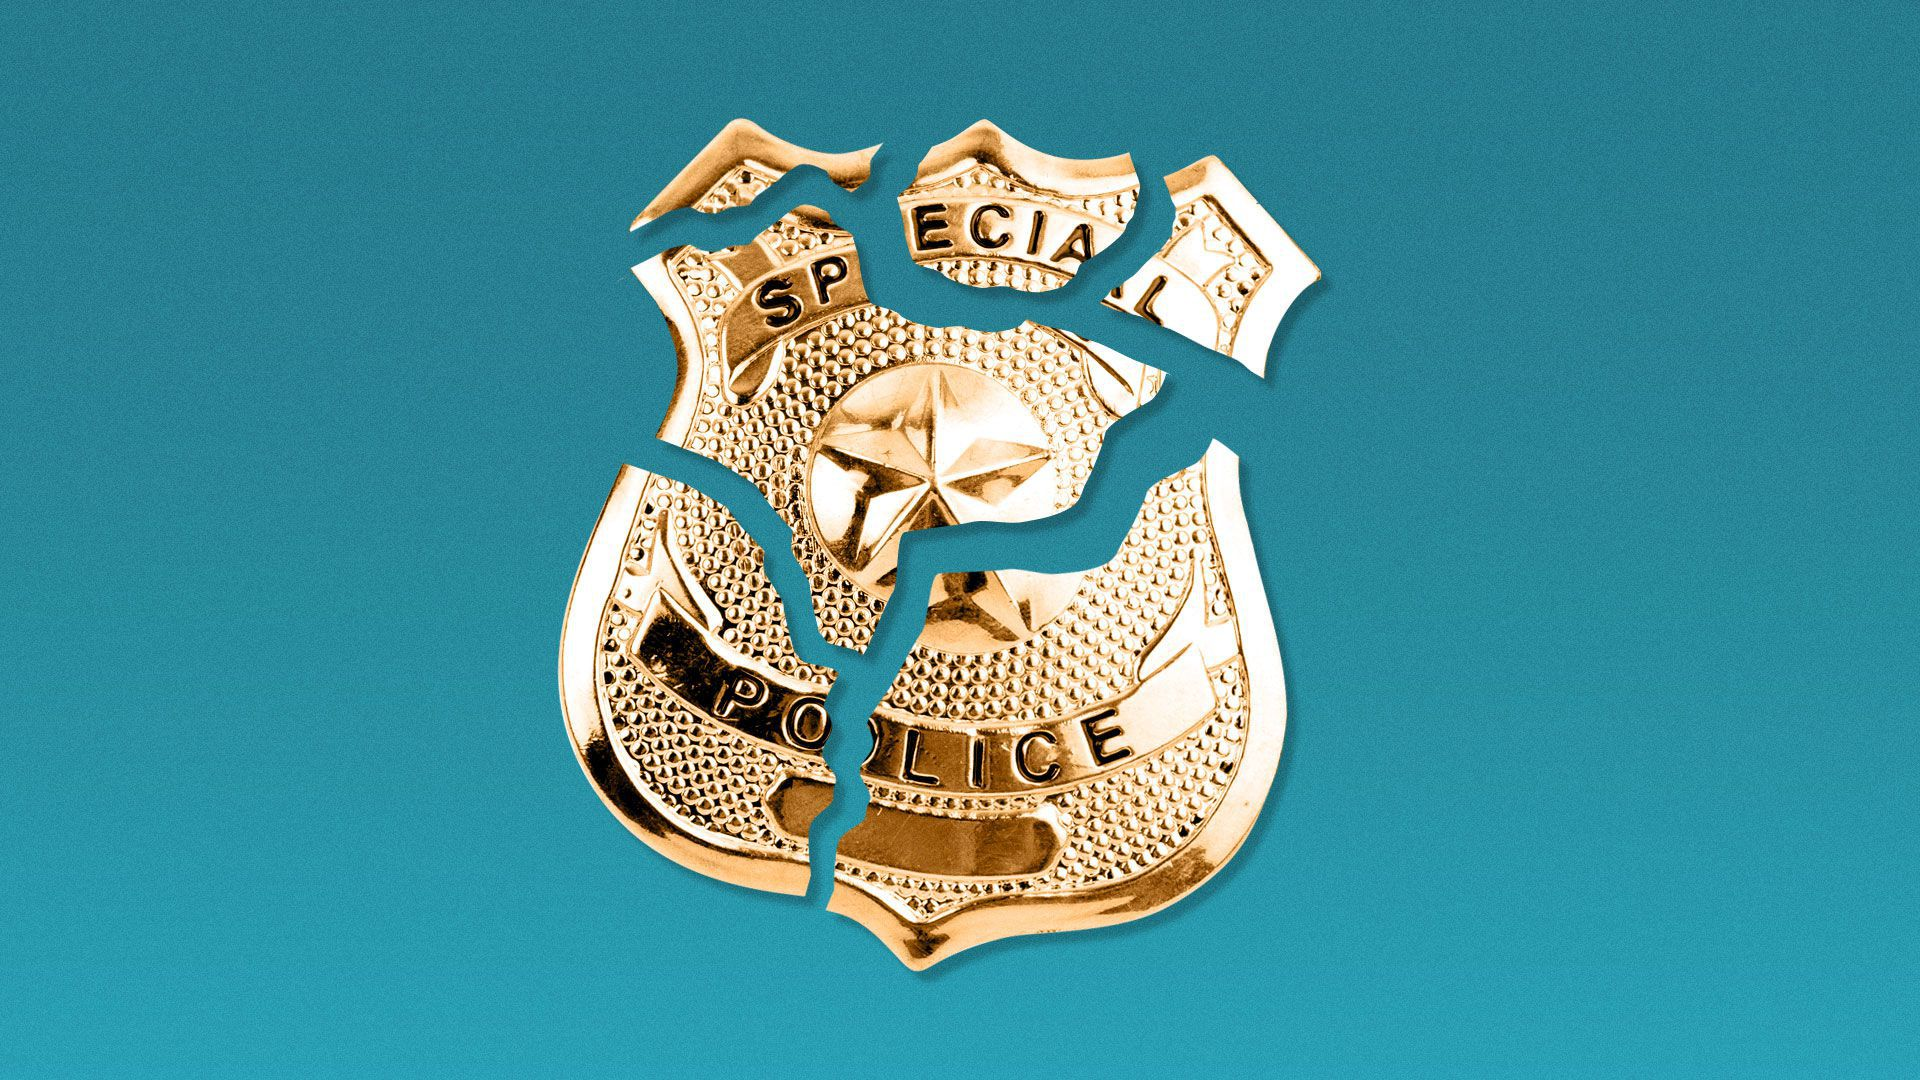 Illustration of cracked and broken police badge